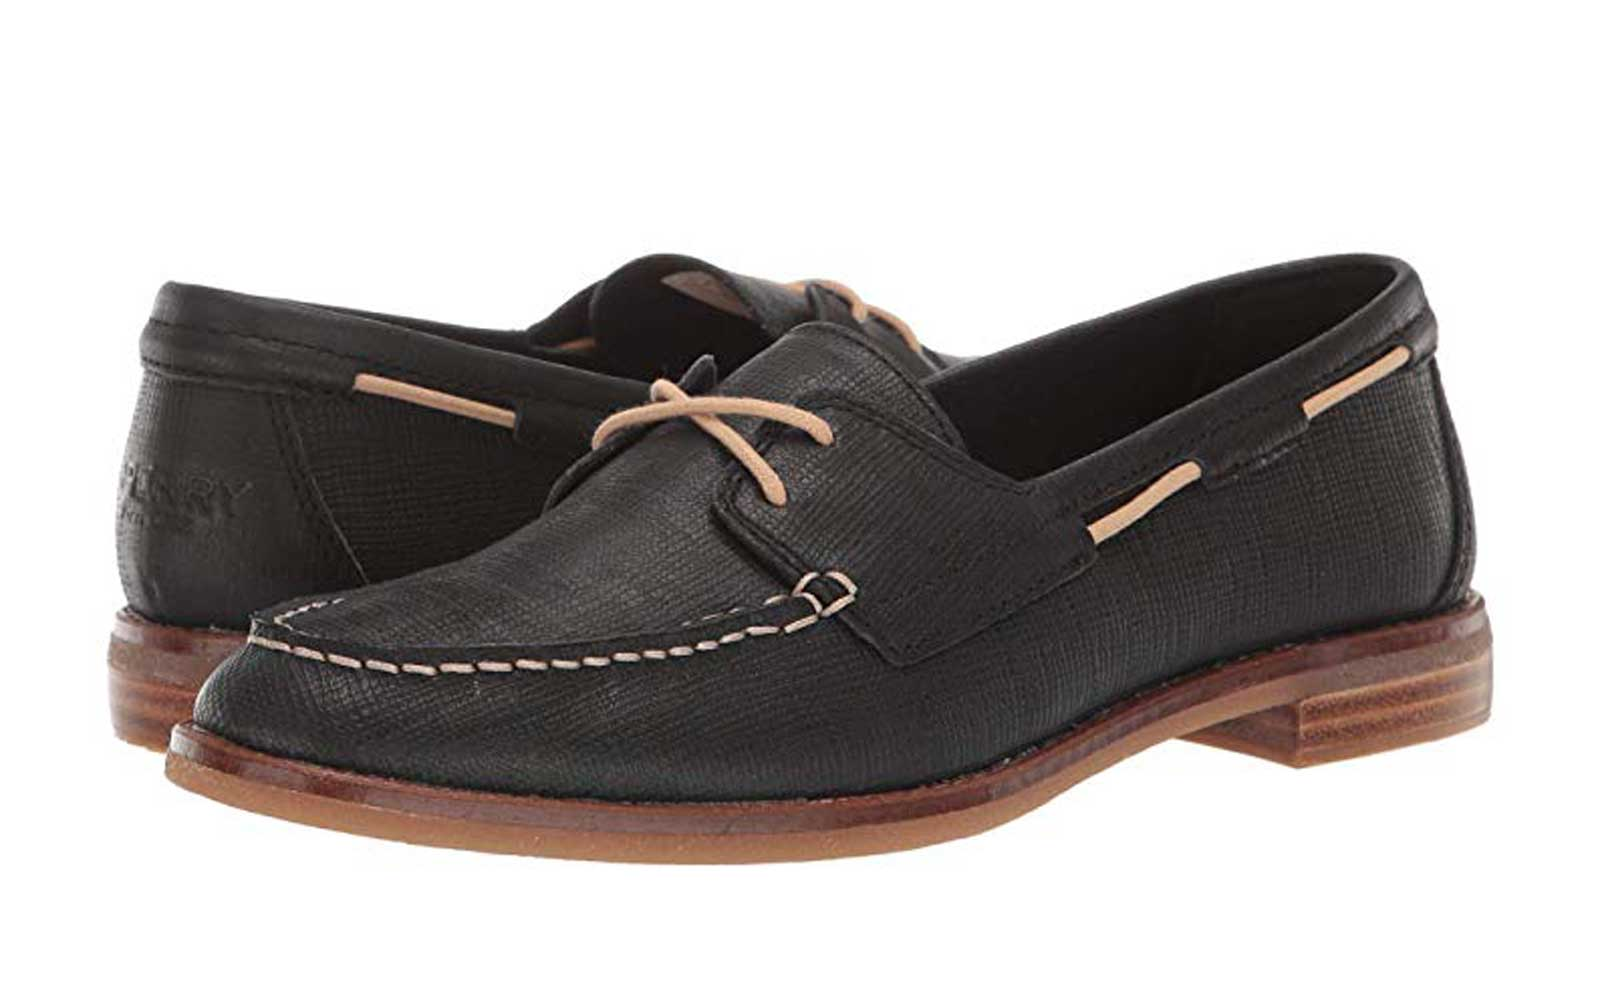 Women's Sperry Loafer